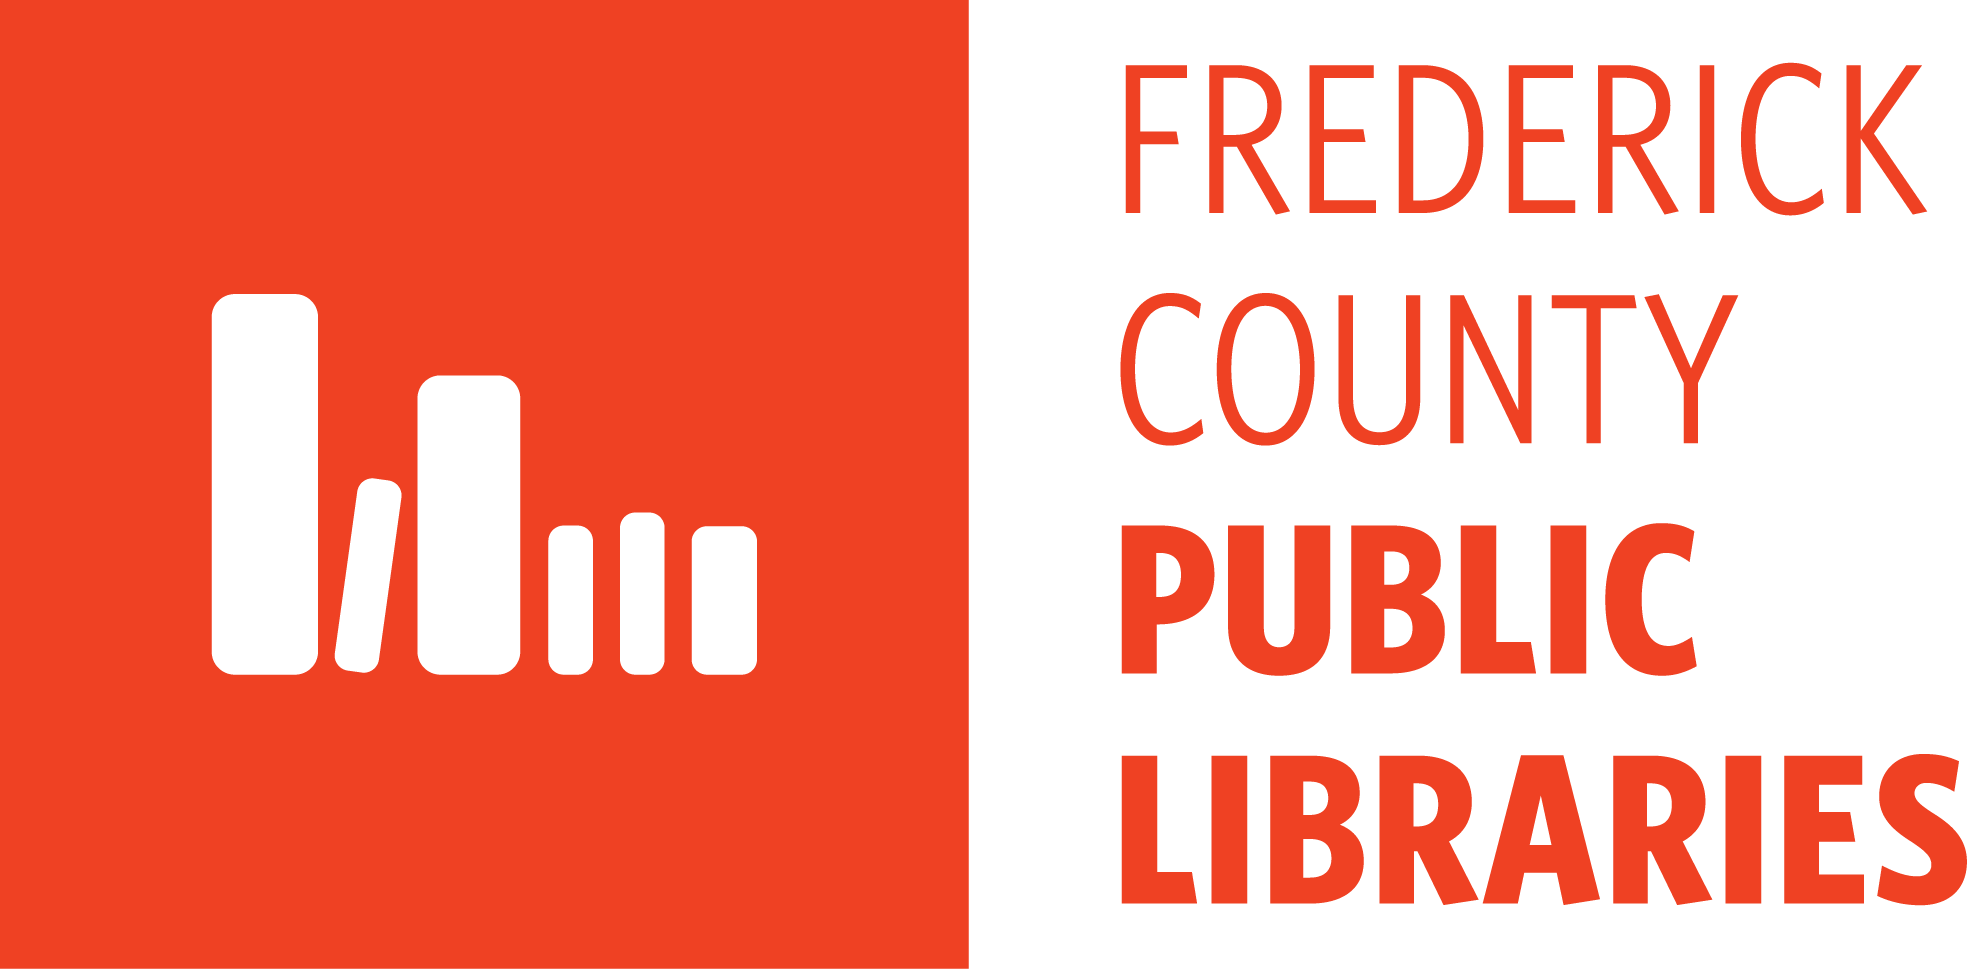 Frederick County Public Libraries logo